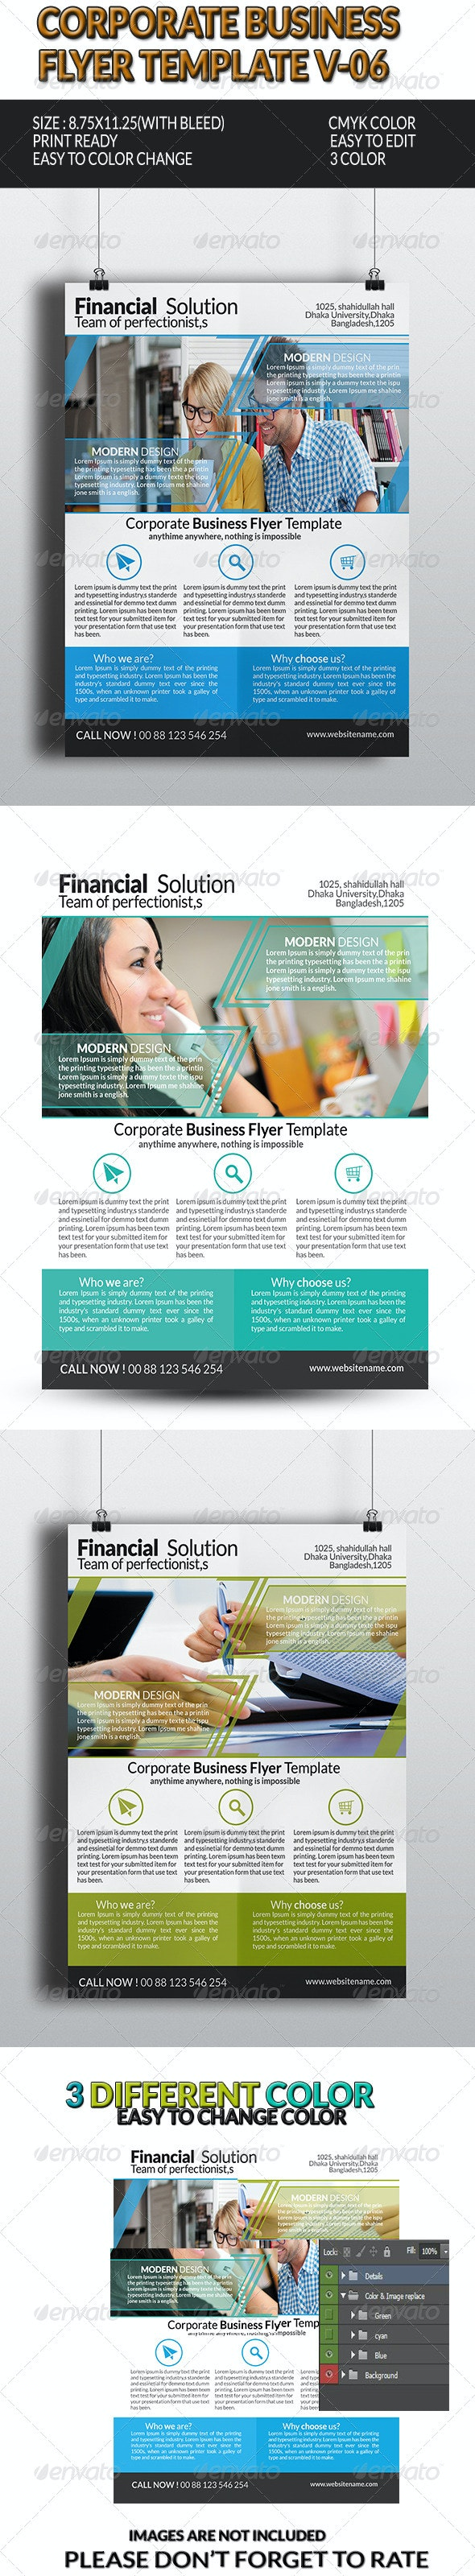 Corporate Business Flyer Template V-6 - Corporate Flyers